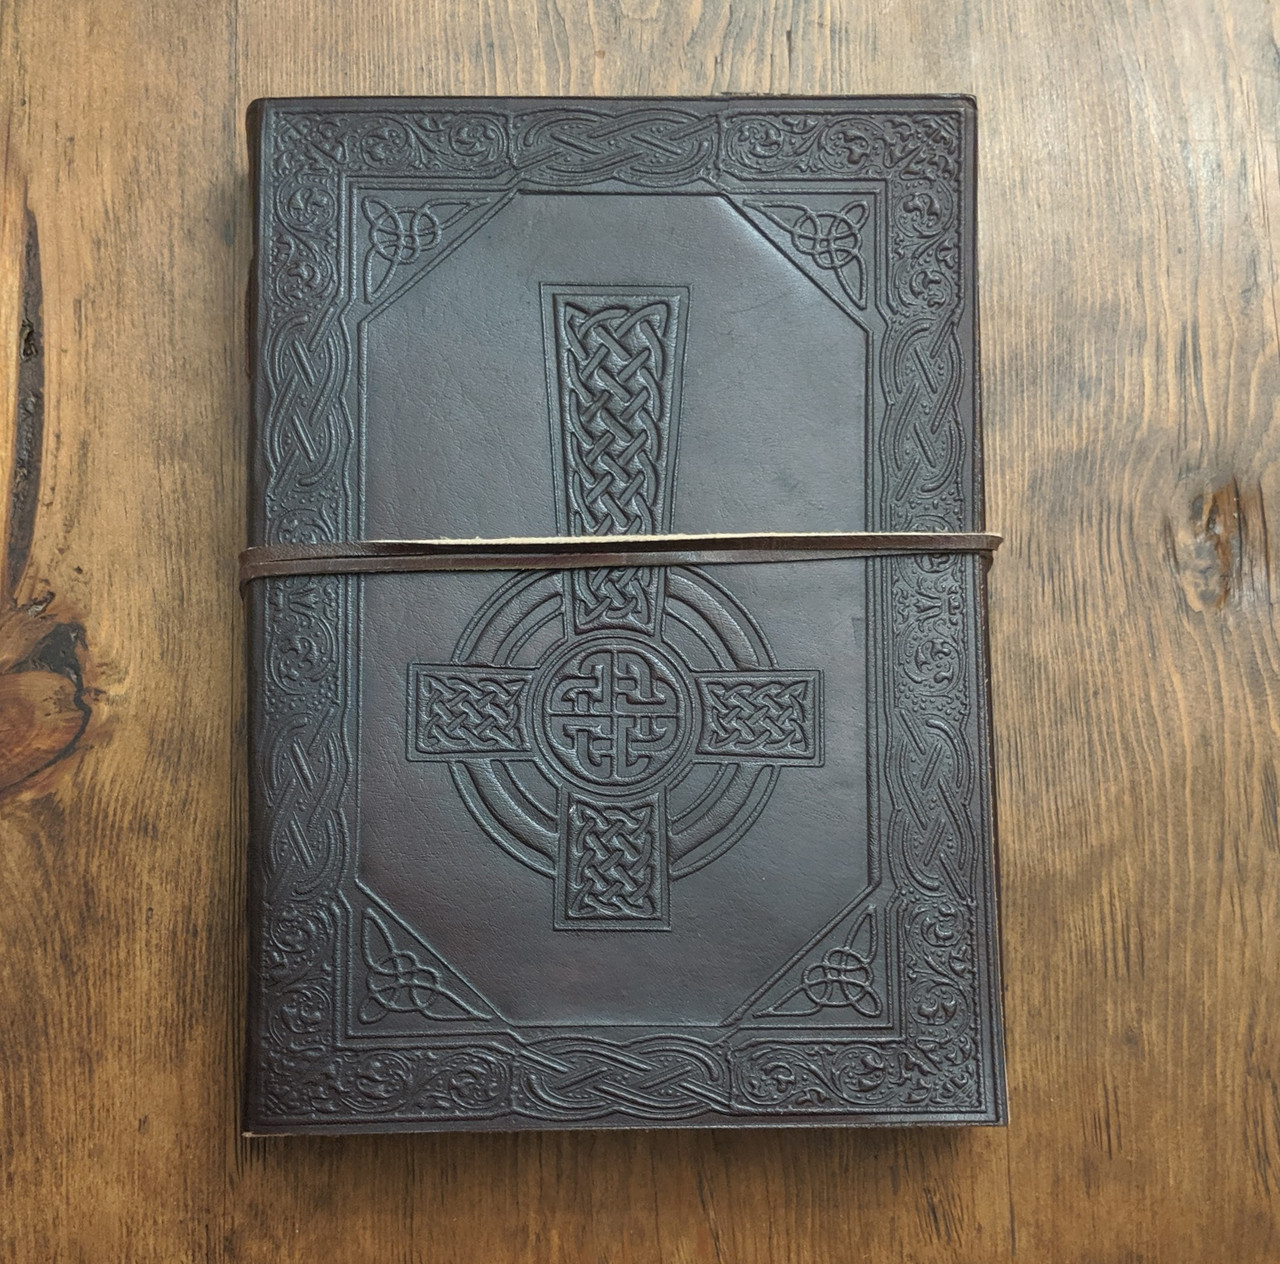 upside down celtic cross leather journal - OOPS!